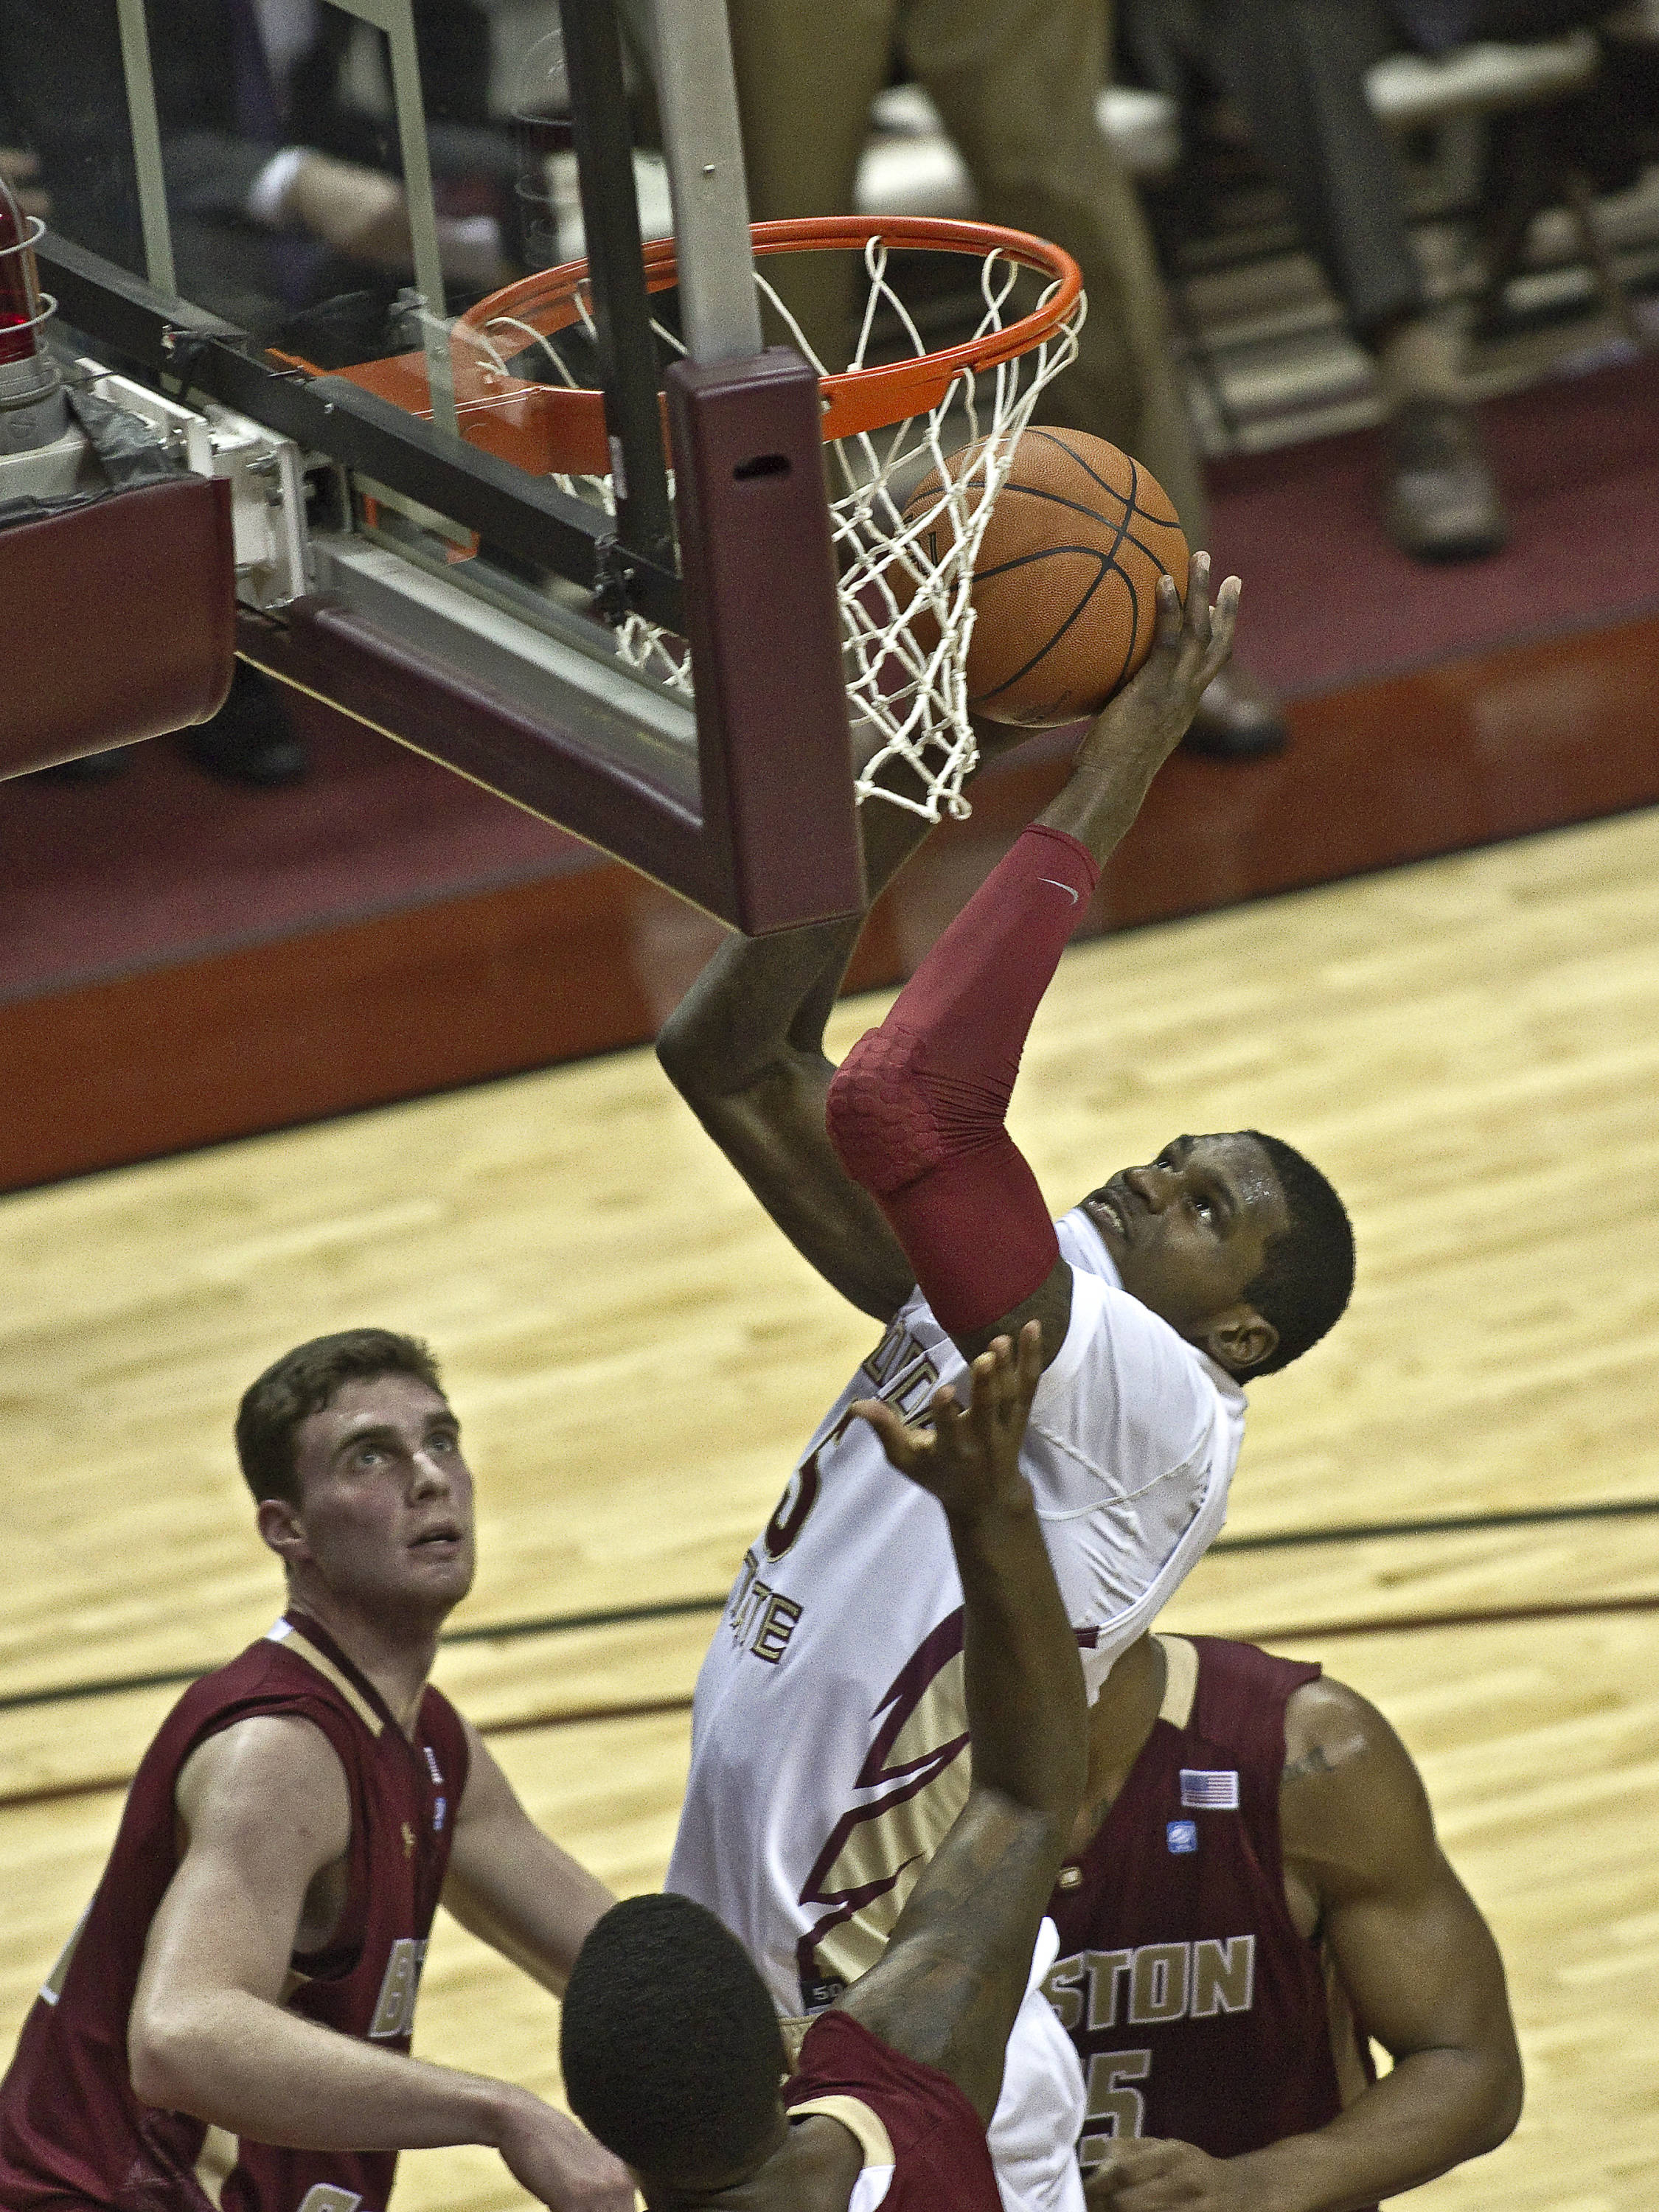 FSU vs Boston College - 01/22/11- Bernard James (5)